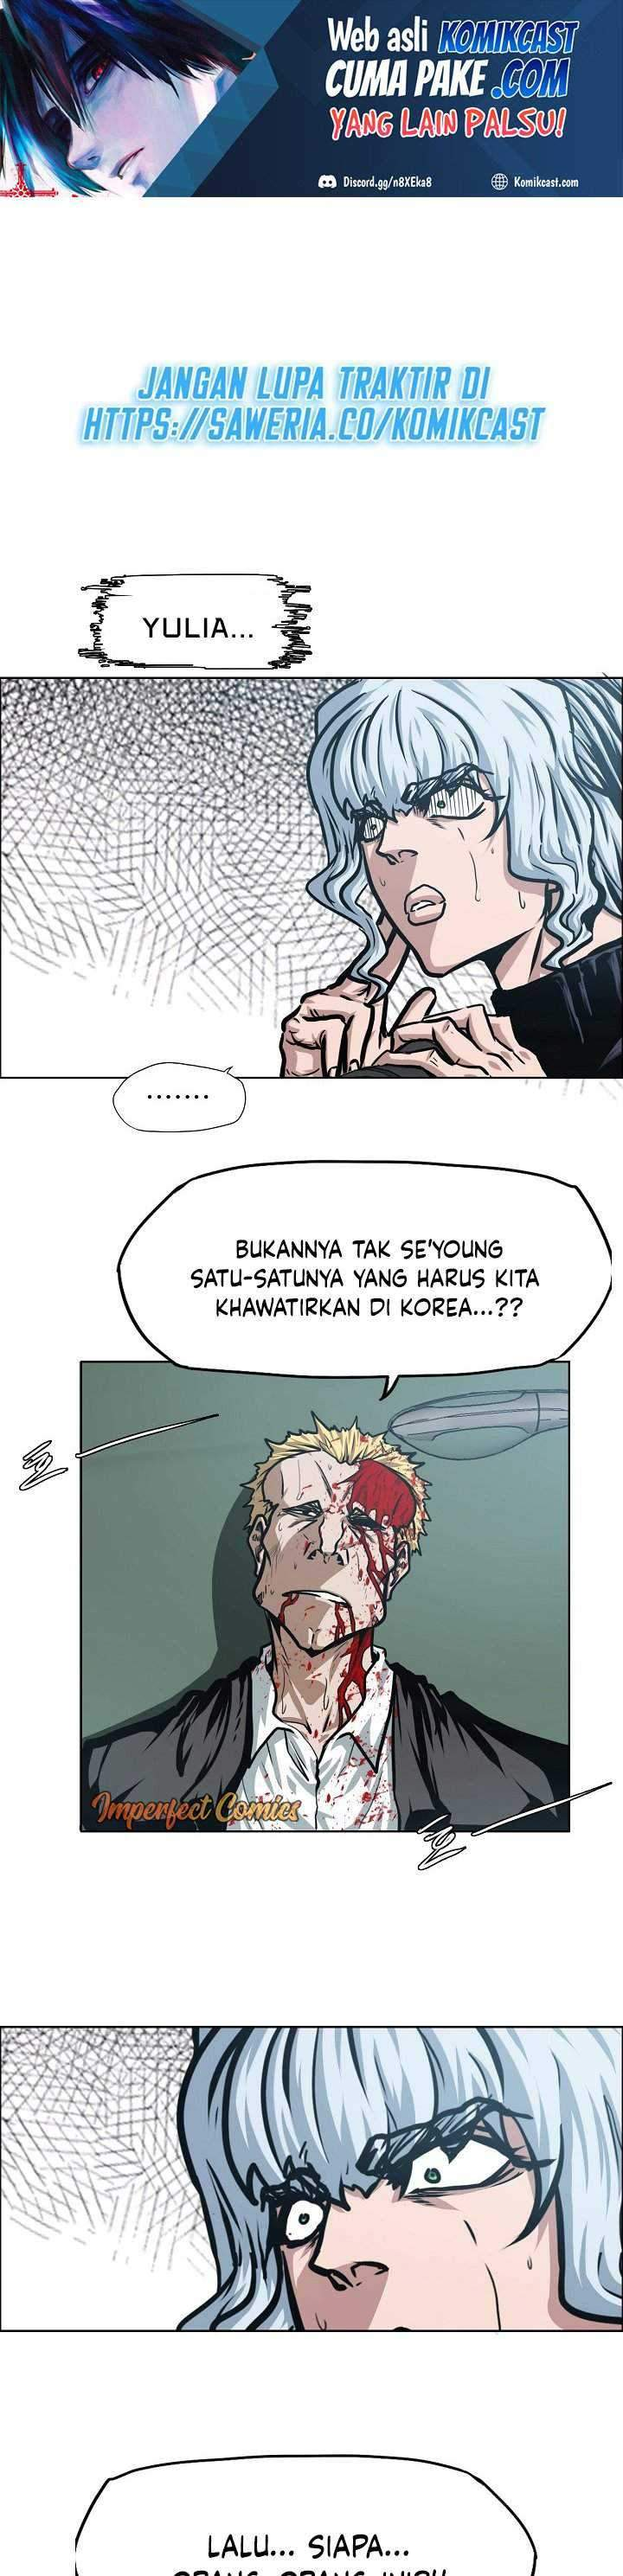 Rooftop Sword Master Chapter 77